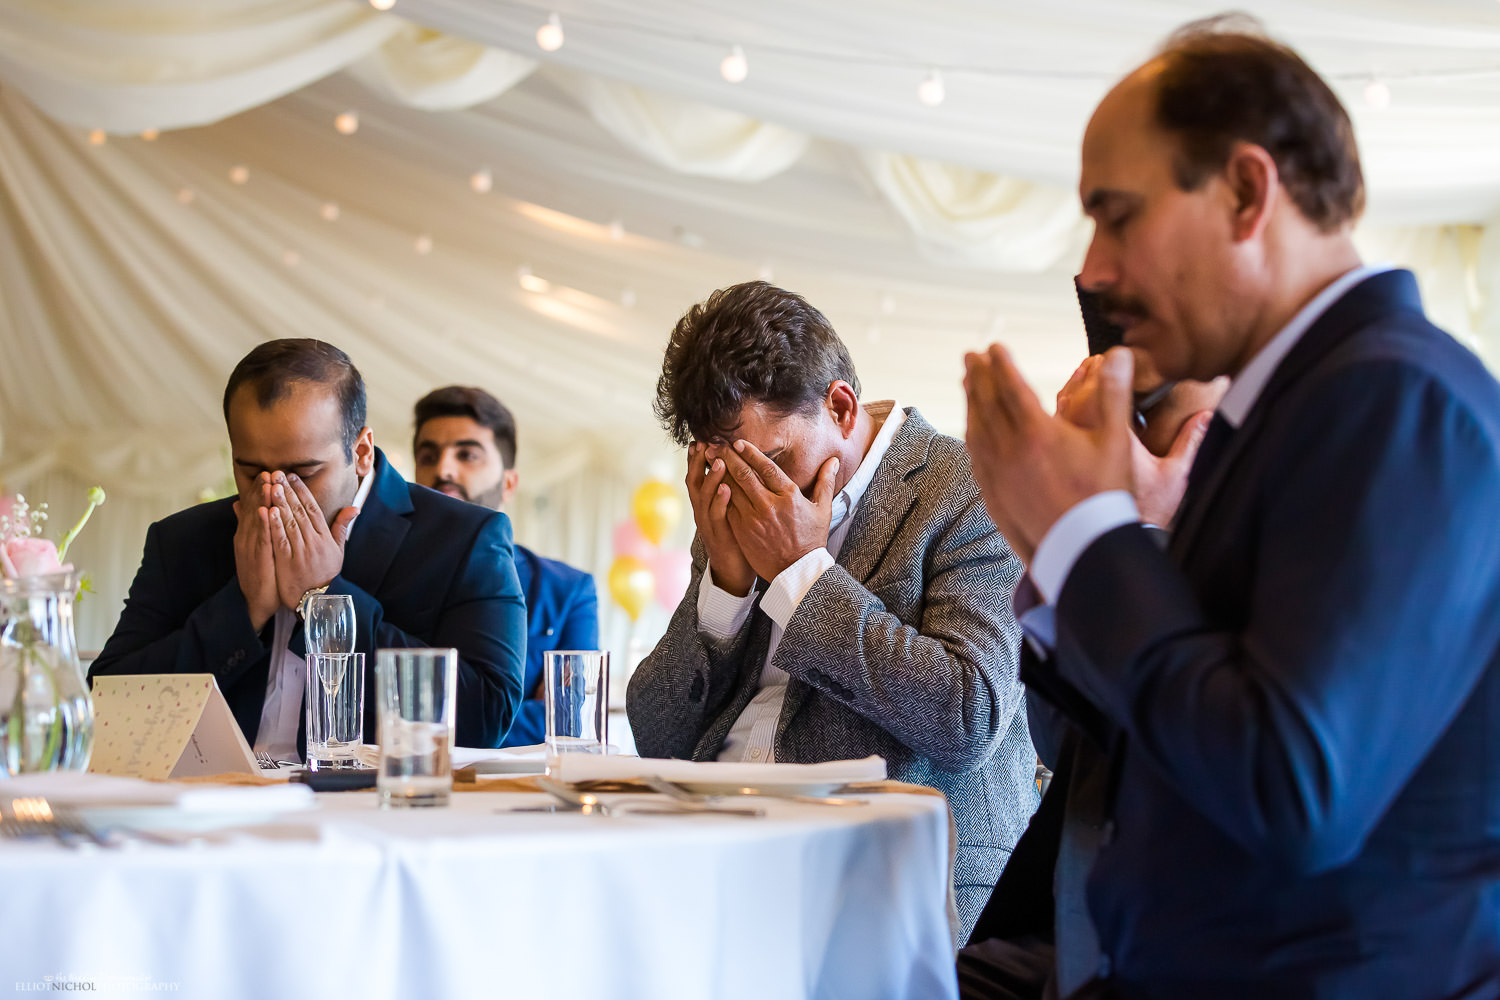 Silent pray at asian engagement party. Photo by North East wedding photojournalist Elliot Nichol.